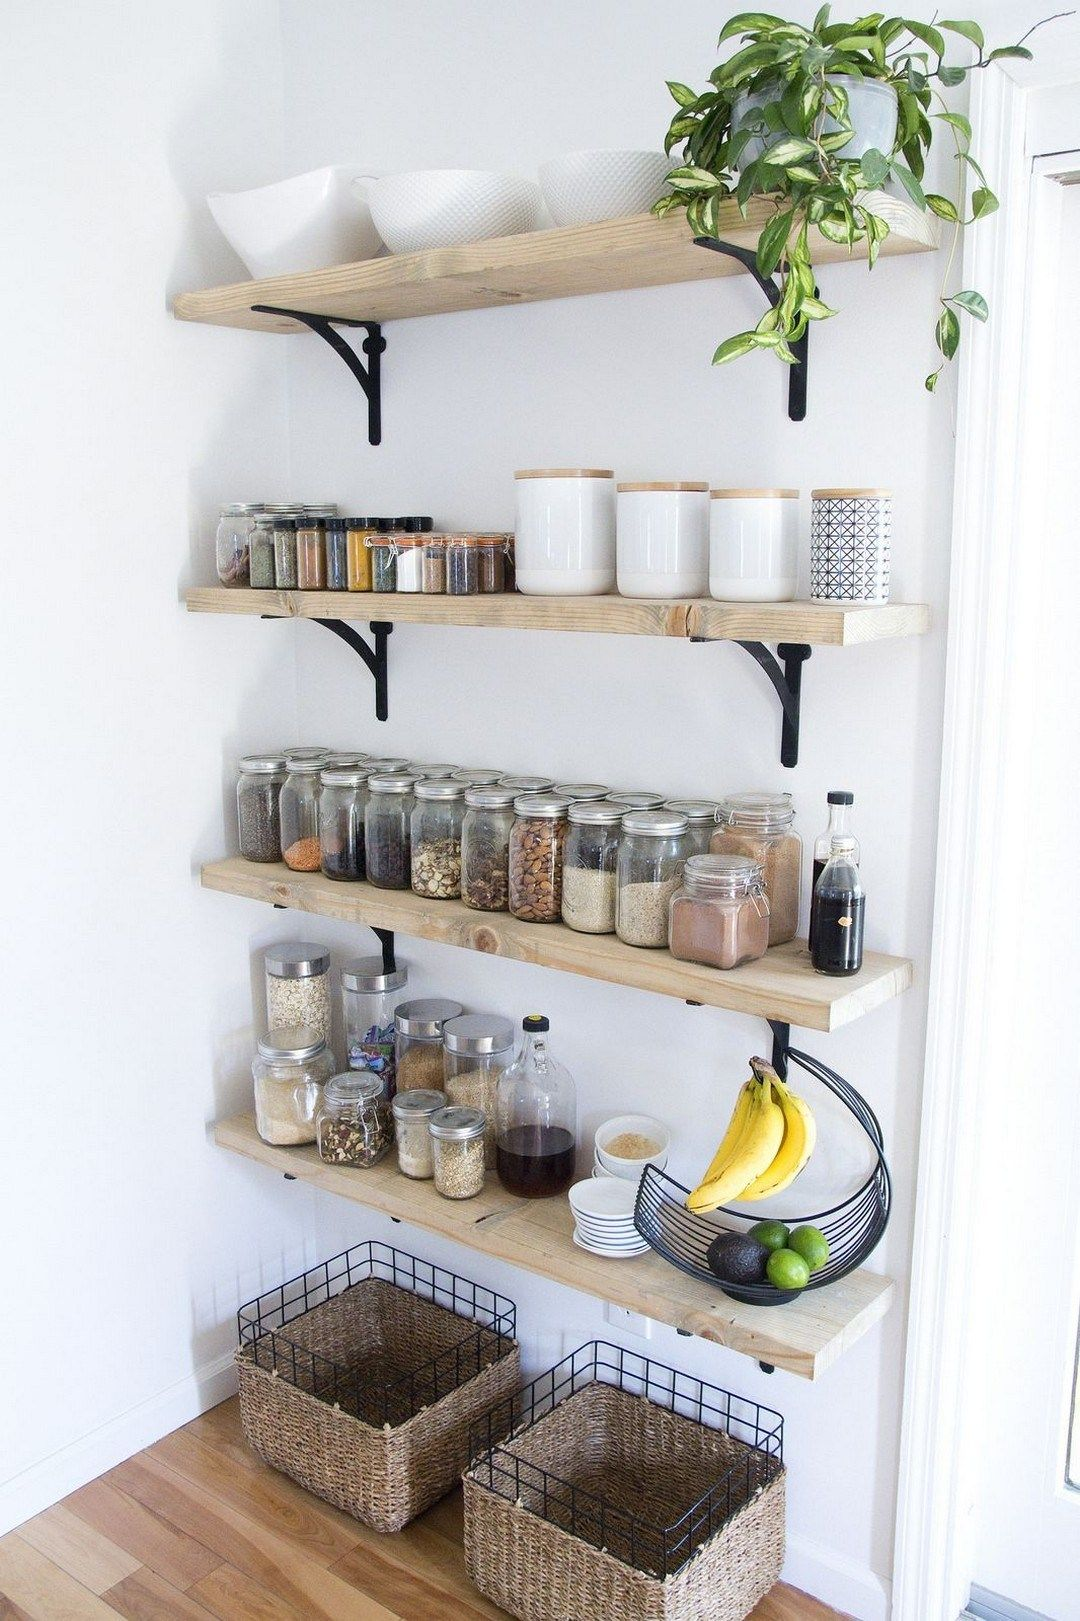 DIY Kitchen Ideas for Small Spaces #smallkitchendecoratingideas